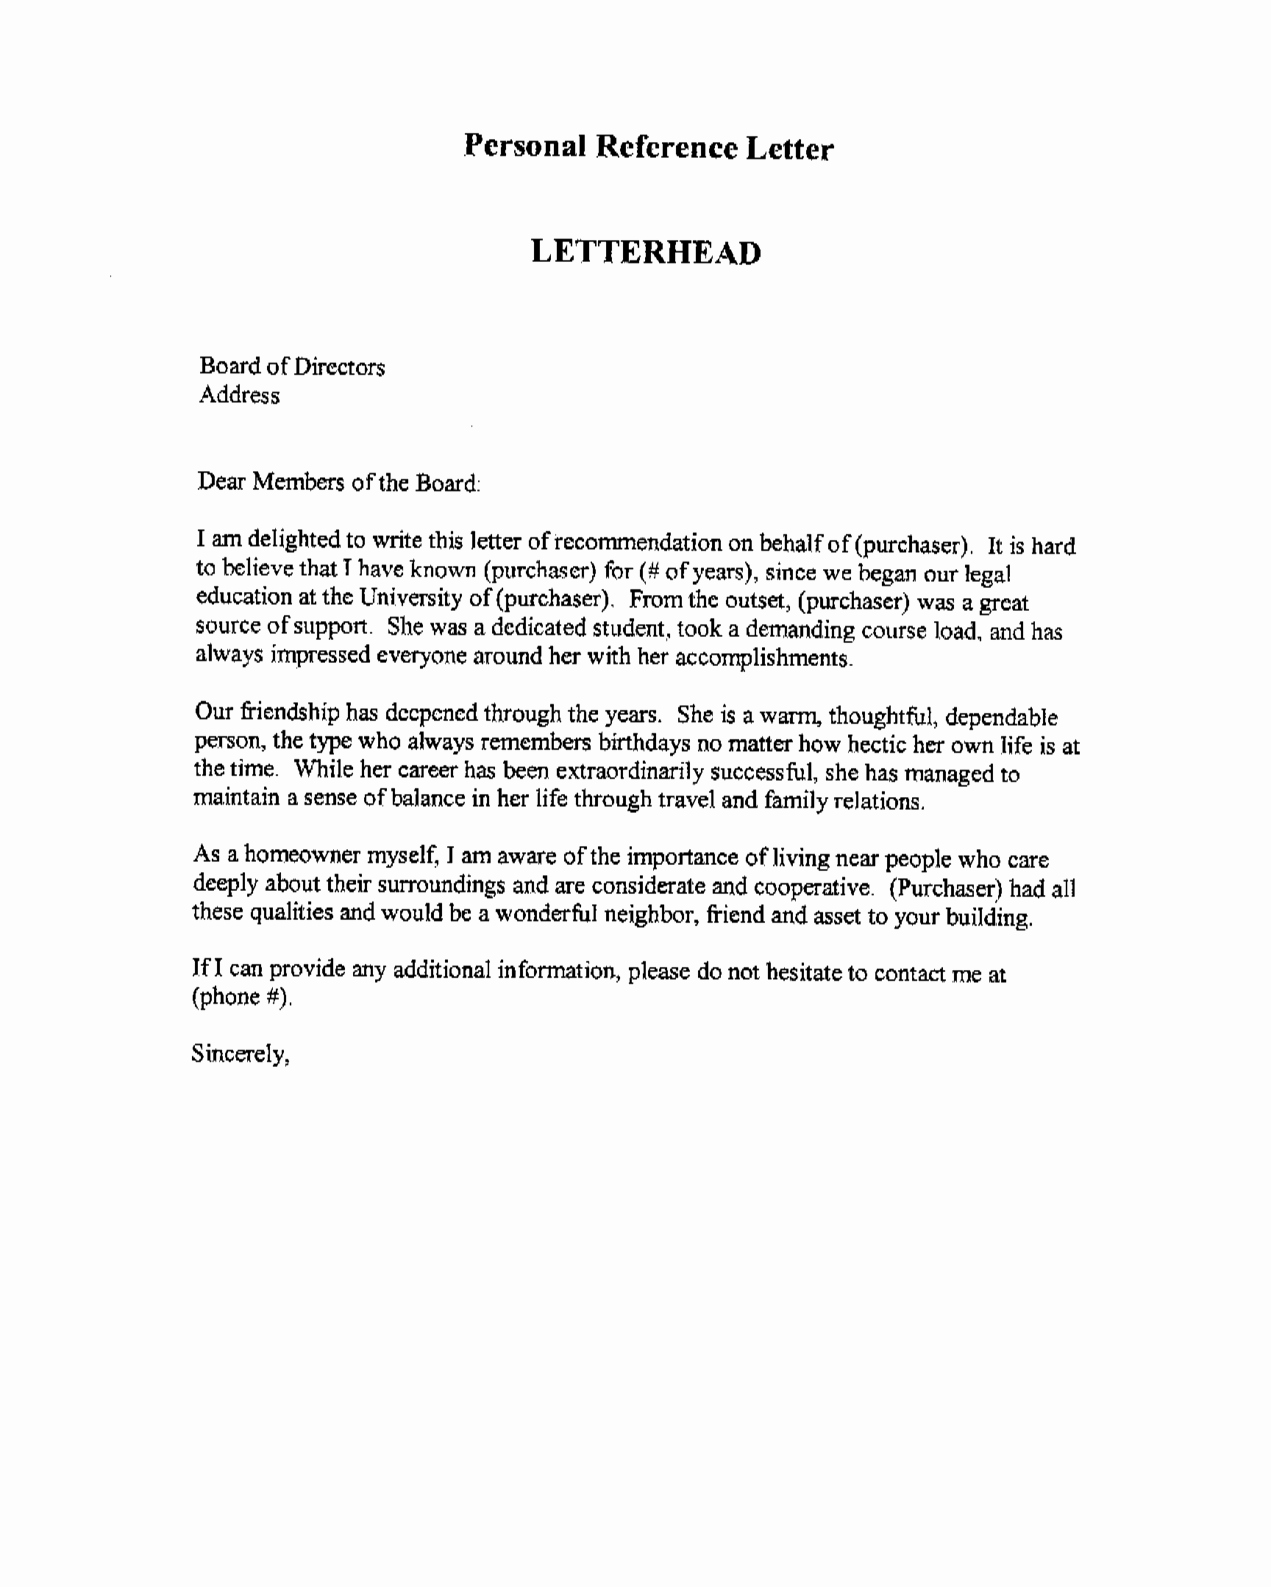 Professional Reference Letter Template Awesome Professional Re Mendation Letter This is An Example Of